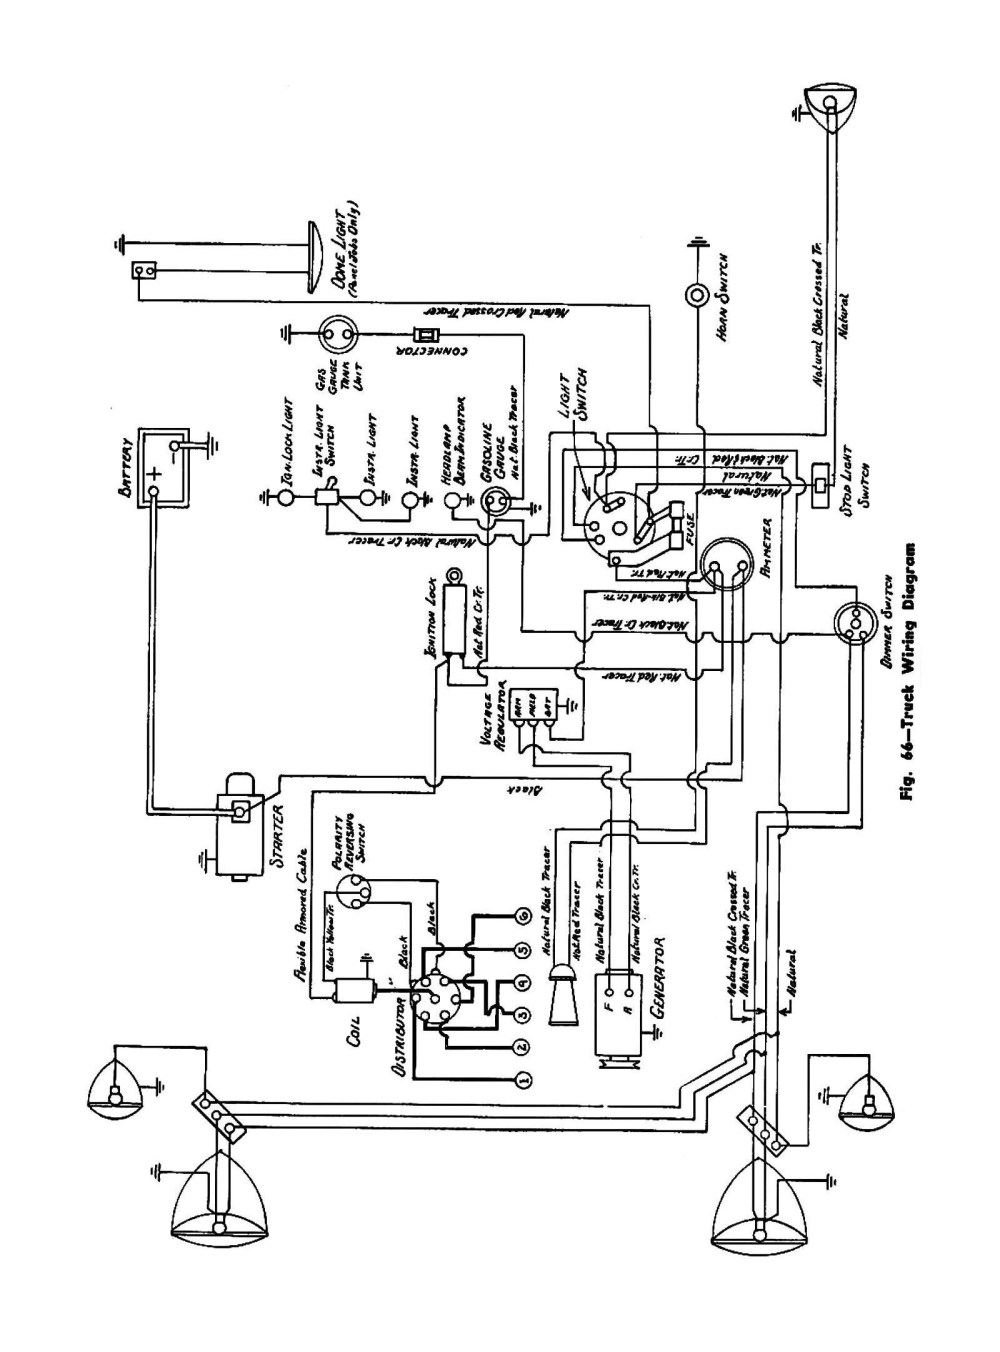 medium resolution of 1951 chevrolet wiring diagram simple wiring diagrams mercedes benz wiring harness chevy truck wiring diagram chevy